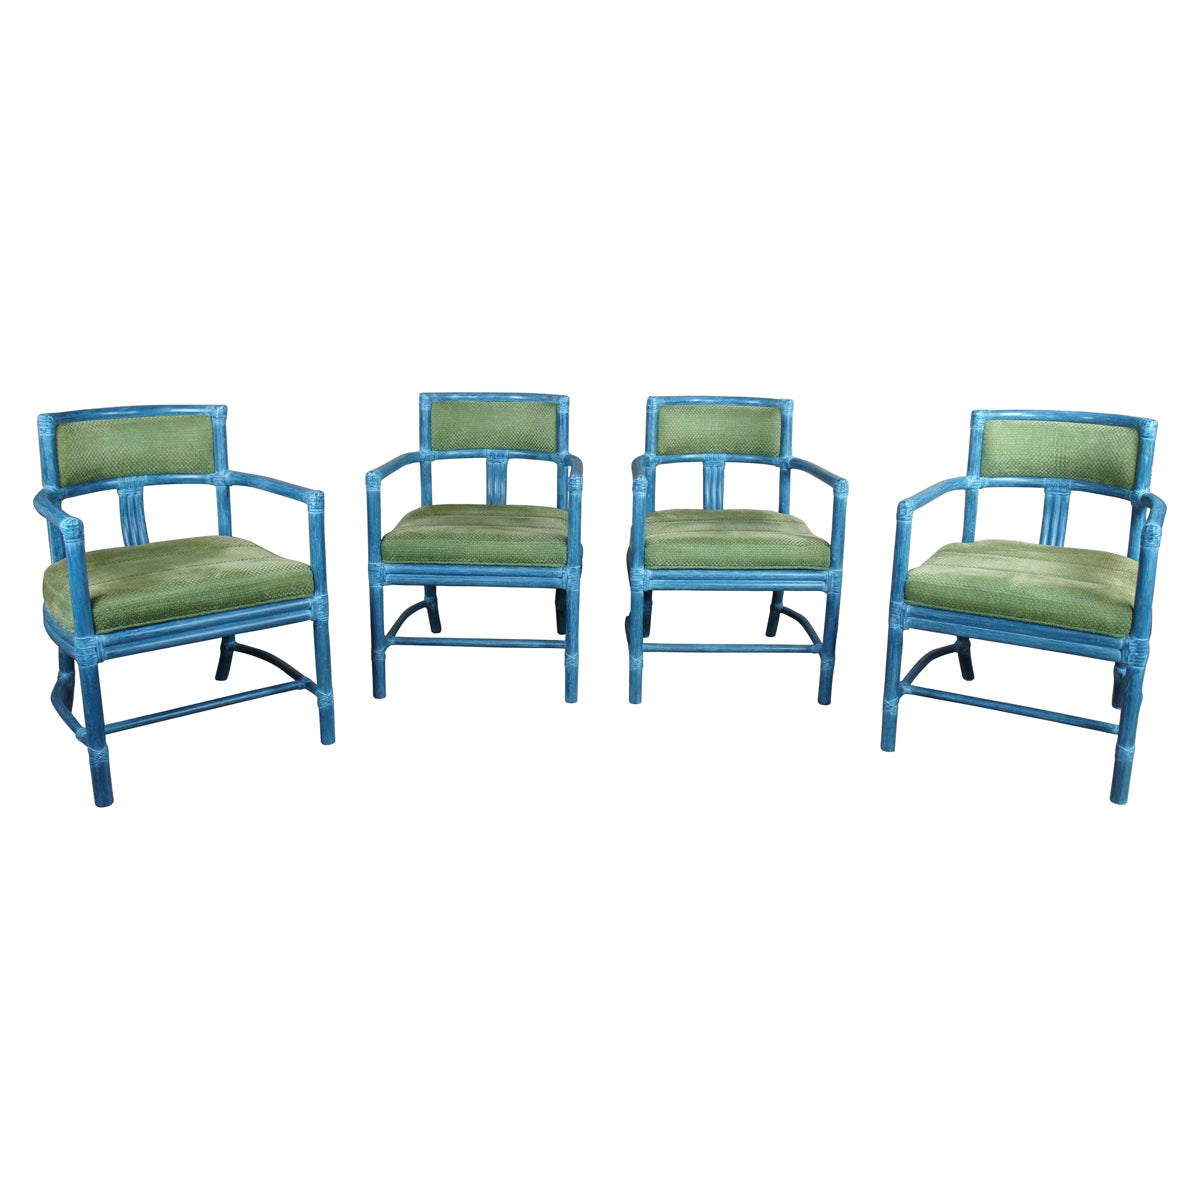 4 McGuire Manhattan Bamboo Boho Chic Modern Club Lounge Dining Accent Armchairs